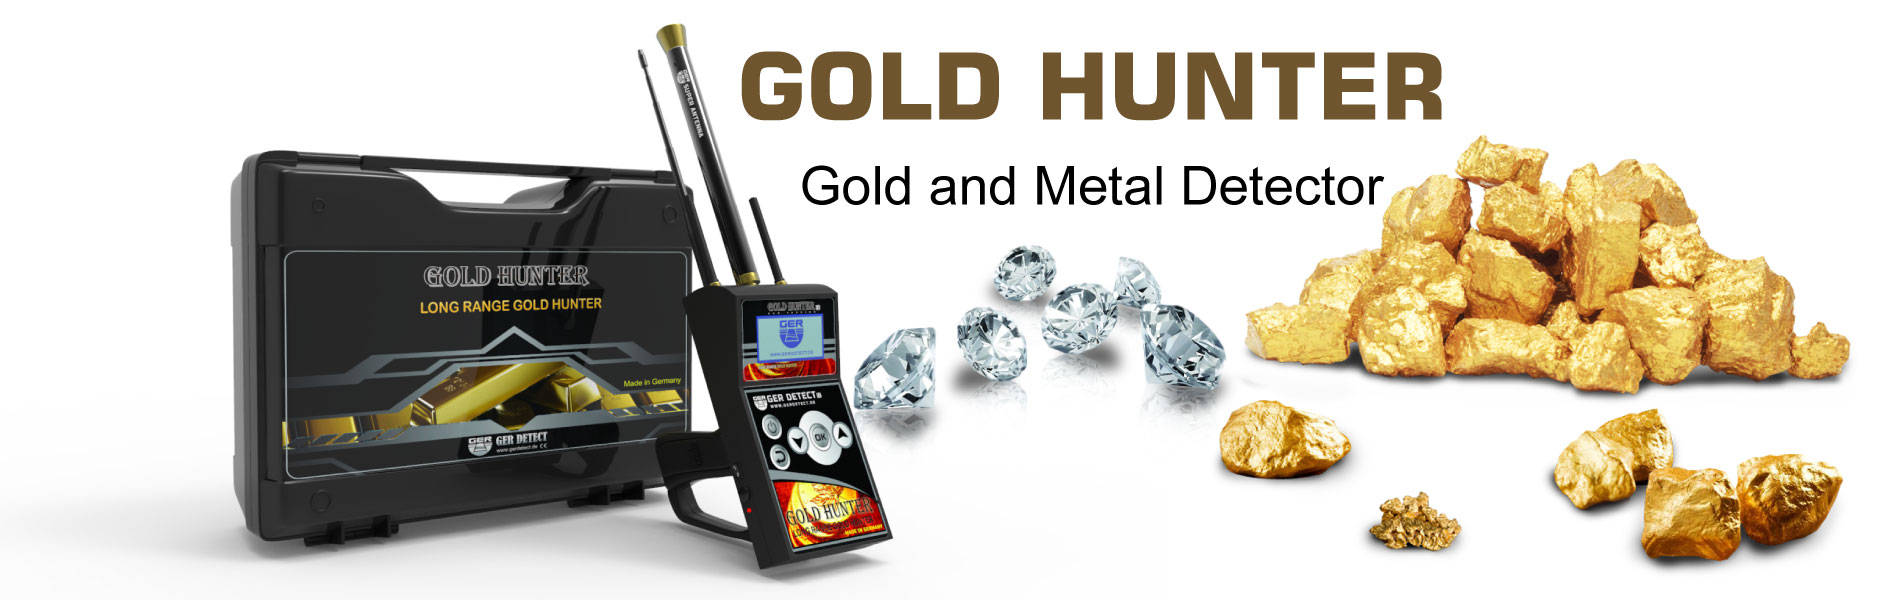 gold-hunter-device-with-long-range-system